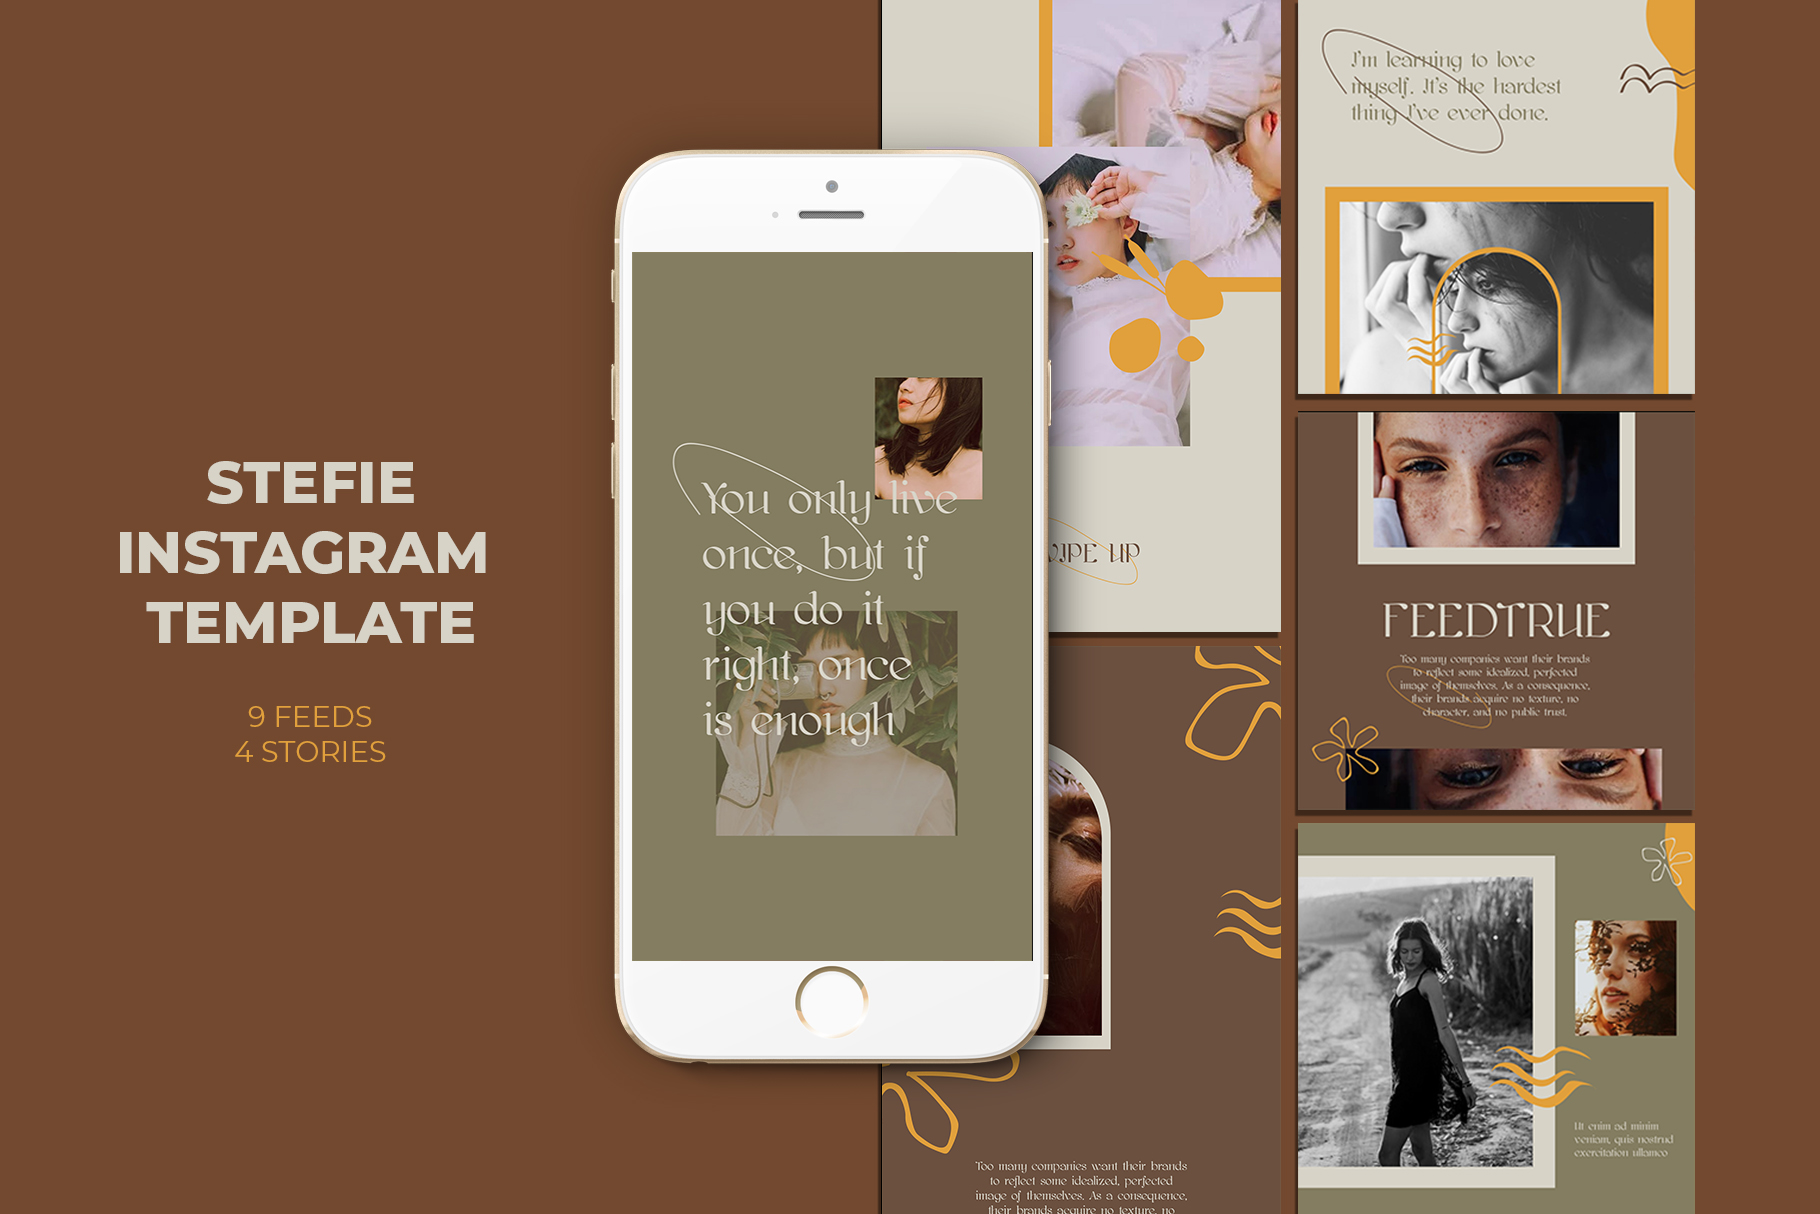 Download Free Stefie Instagram Templates Graphic By Qohhaarqhaz Creative Fabrica for Cricut Explore, Silhouette and other cutting machines.